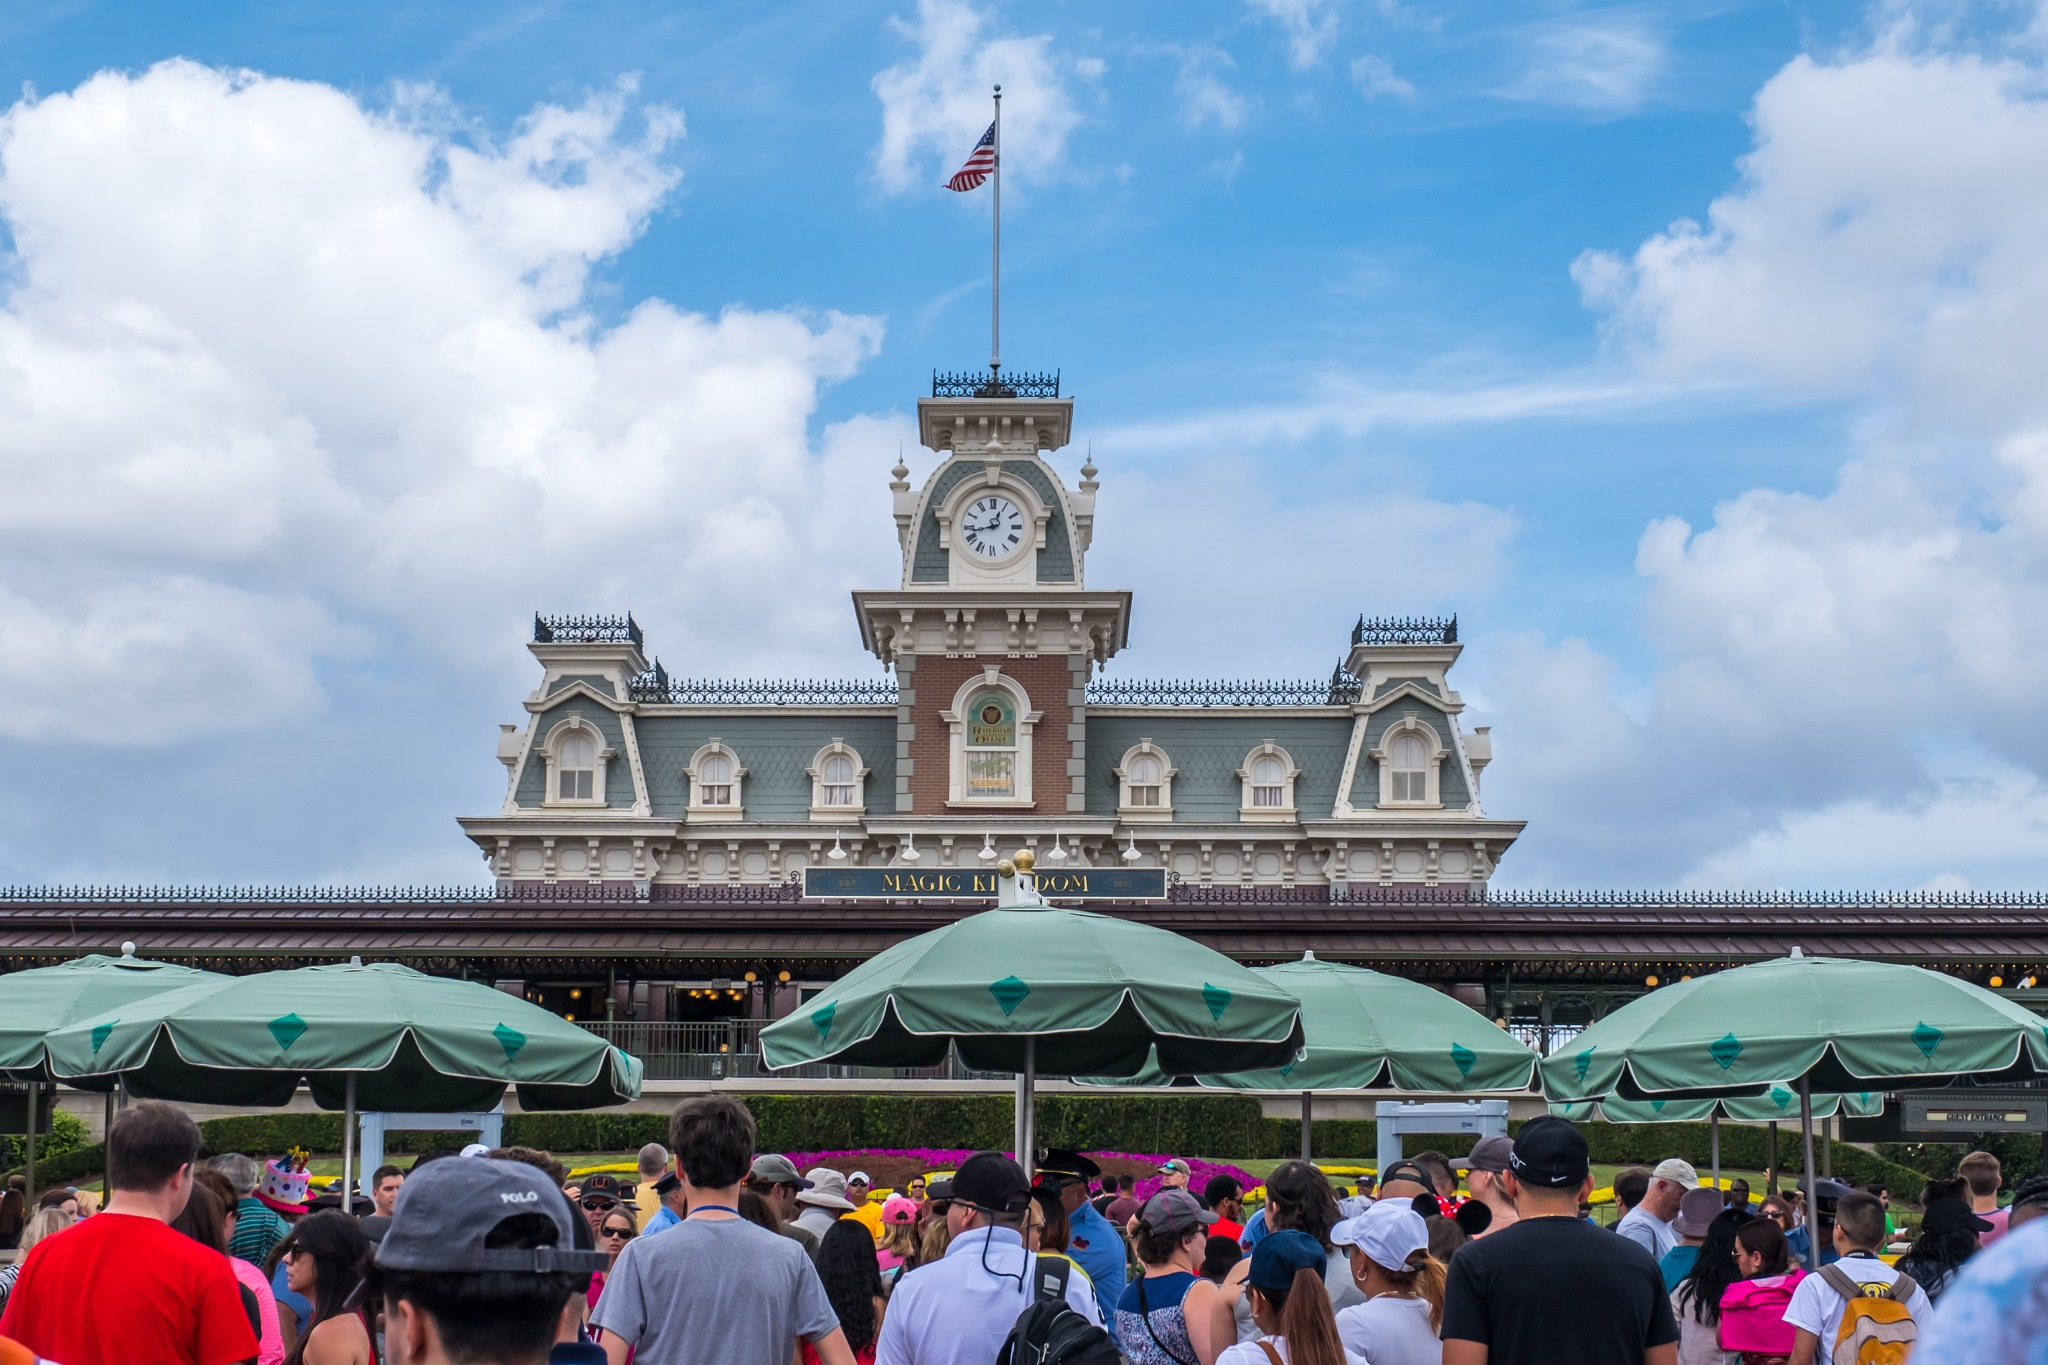 Magic Kingdom by KarimMaataoui